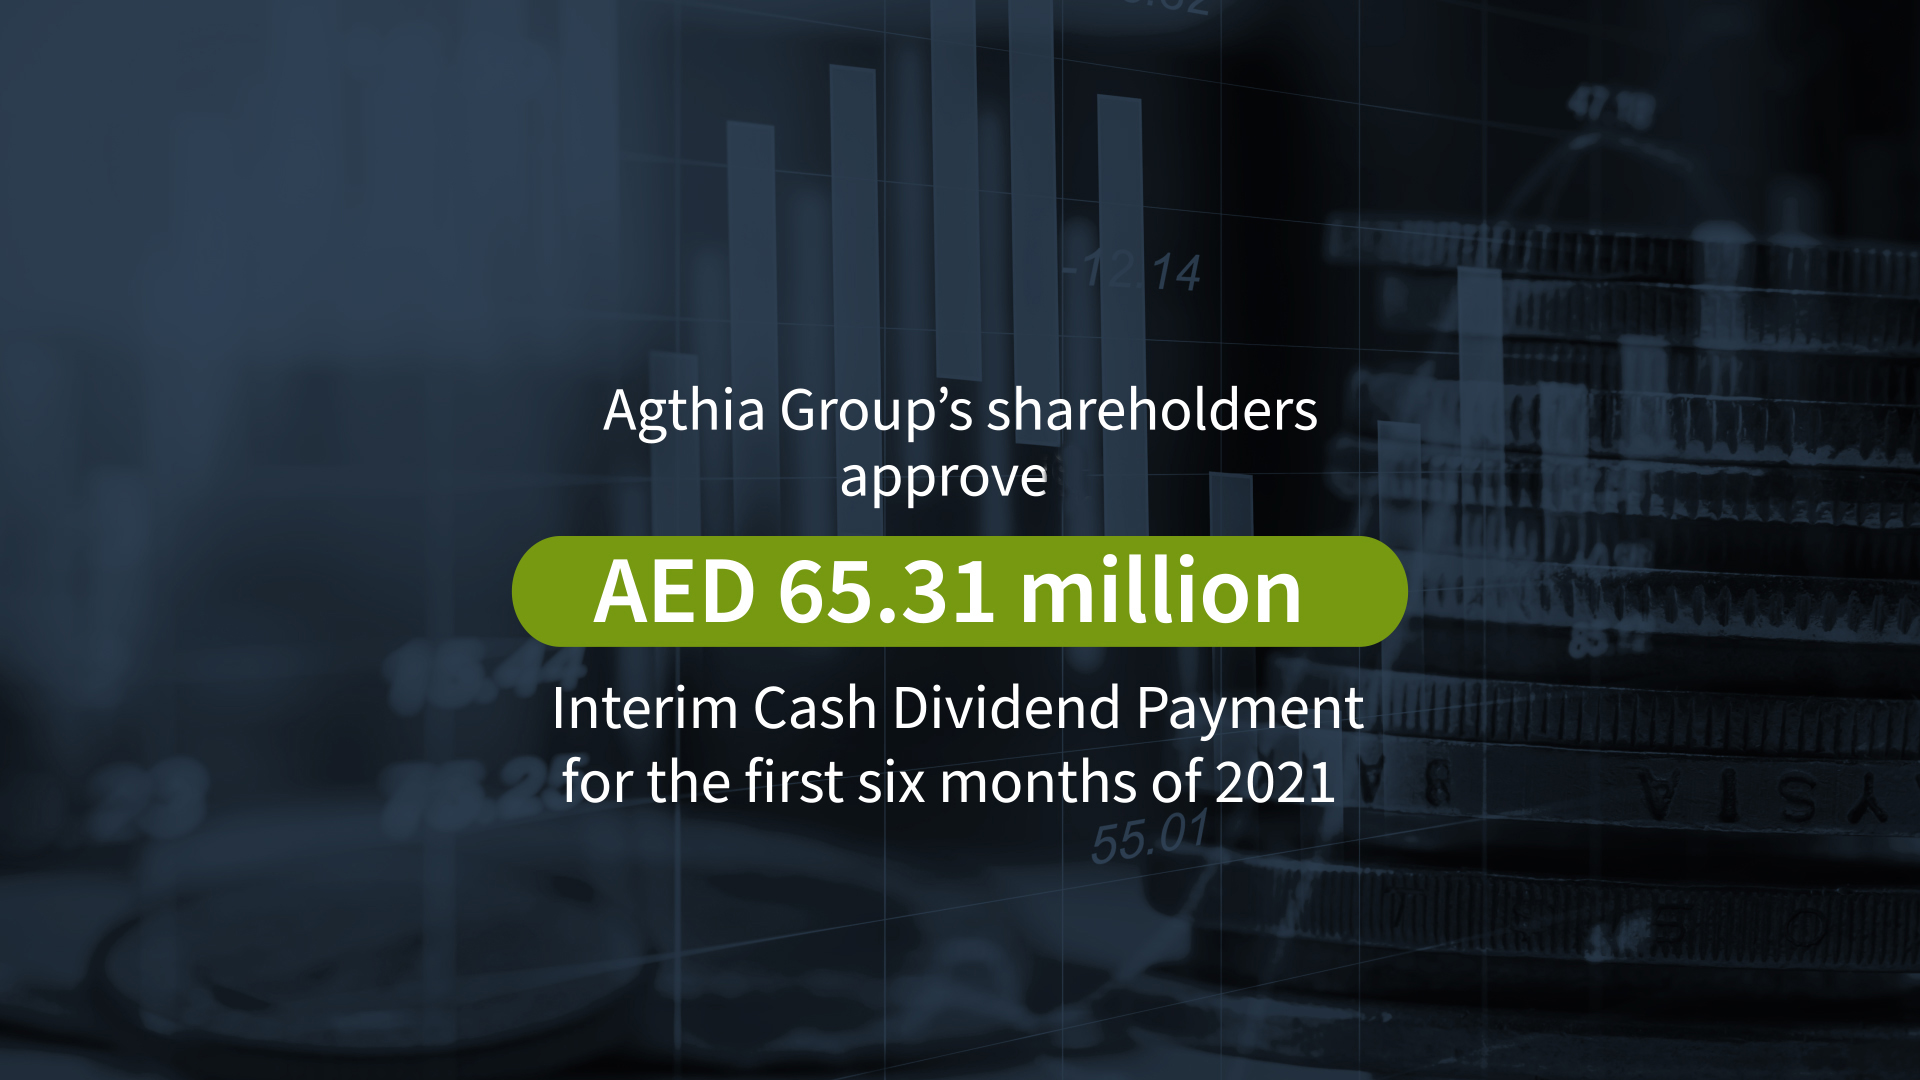 Agthia Group's Shareholders Approve AED 65.31 million Interim Cash Dividend Payment for the first six months of 2021